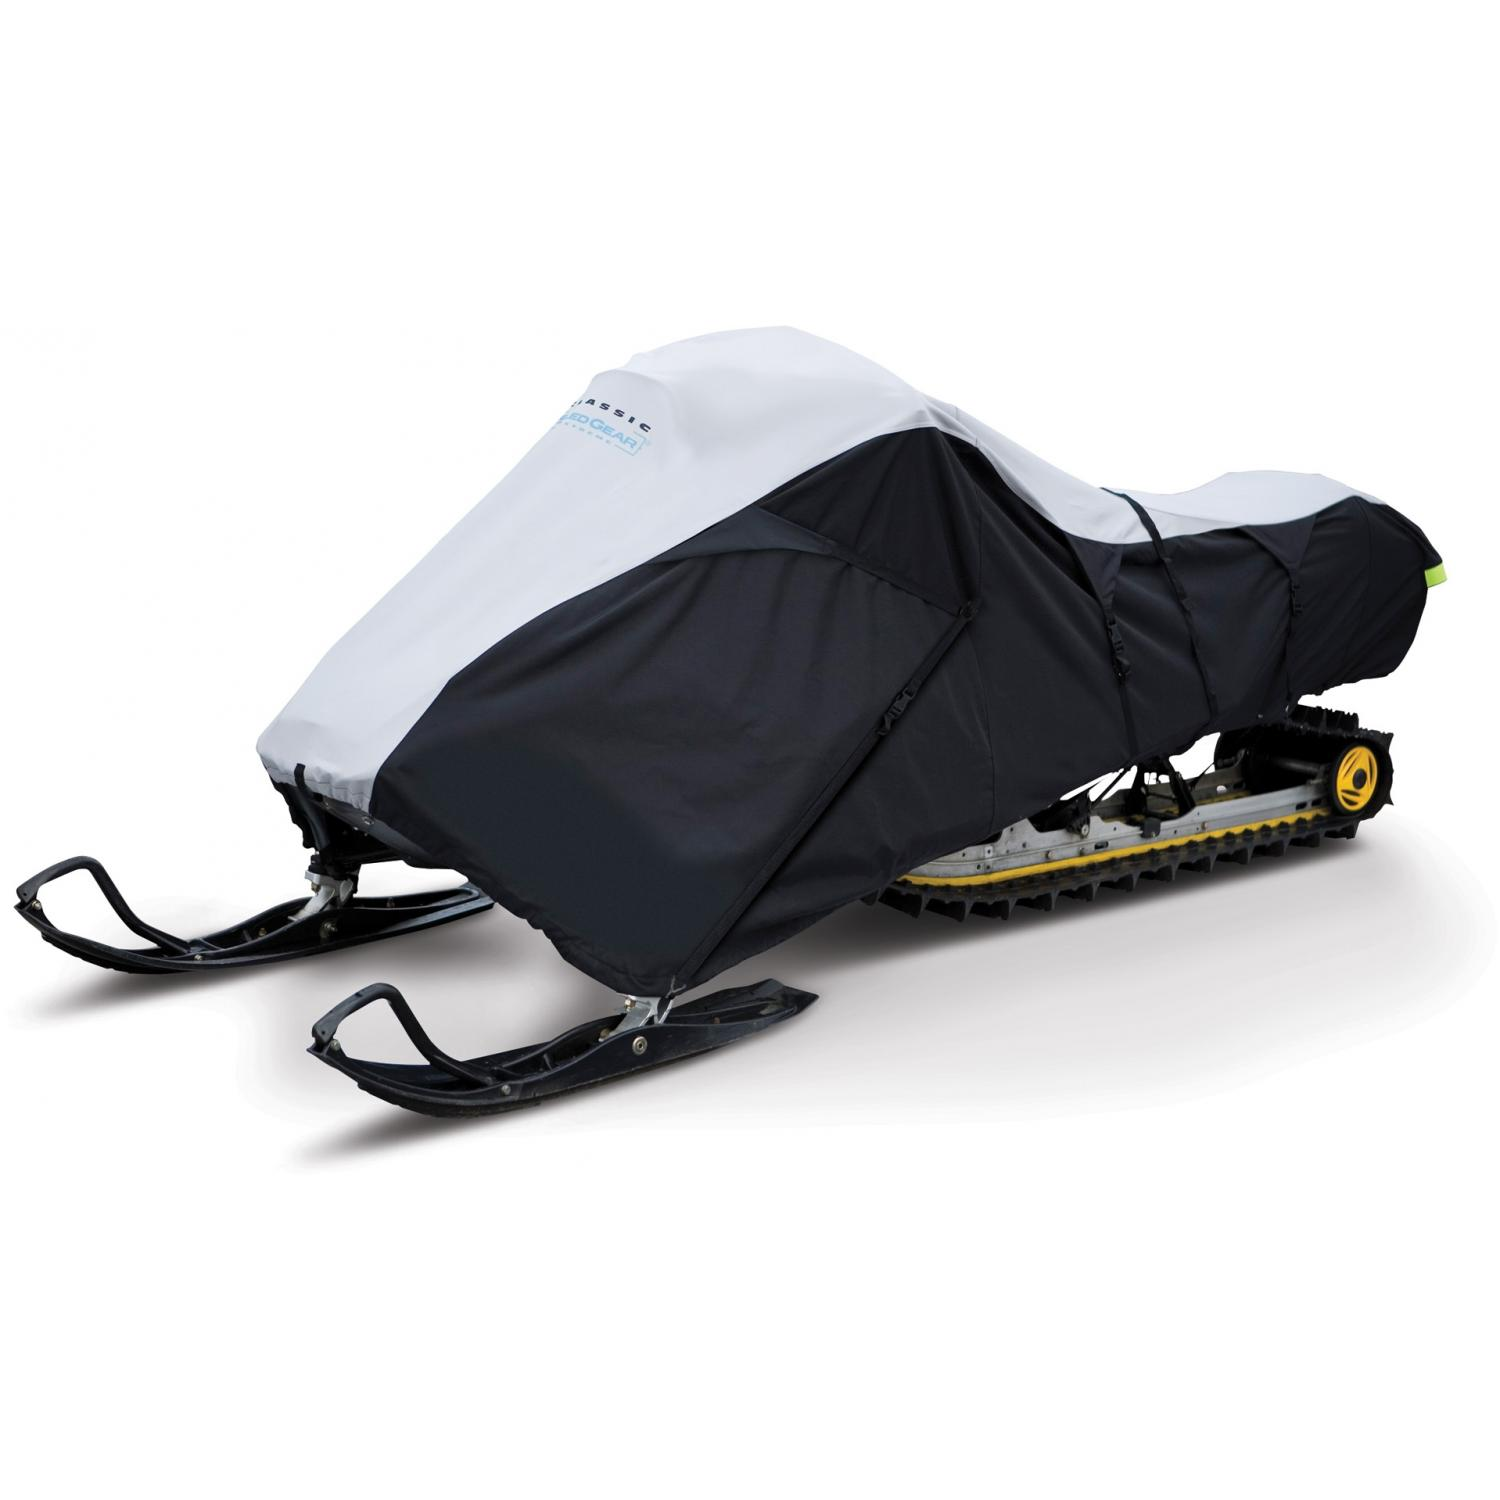 Classic Accessories SledGear Deluxe Snowmobile Travel Cover - Black/Grey - Medium